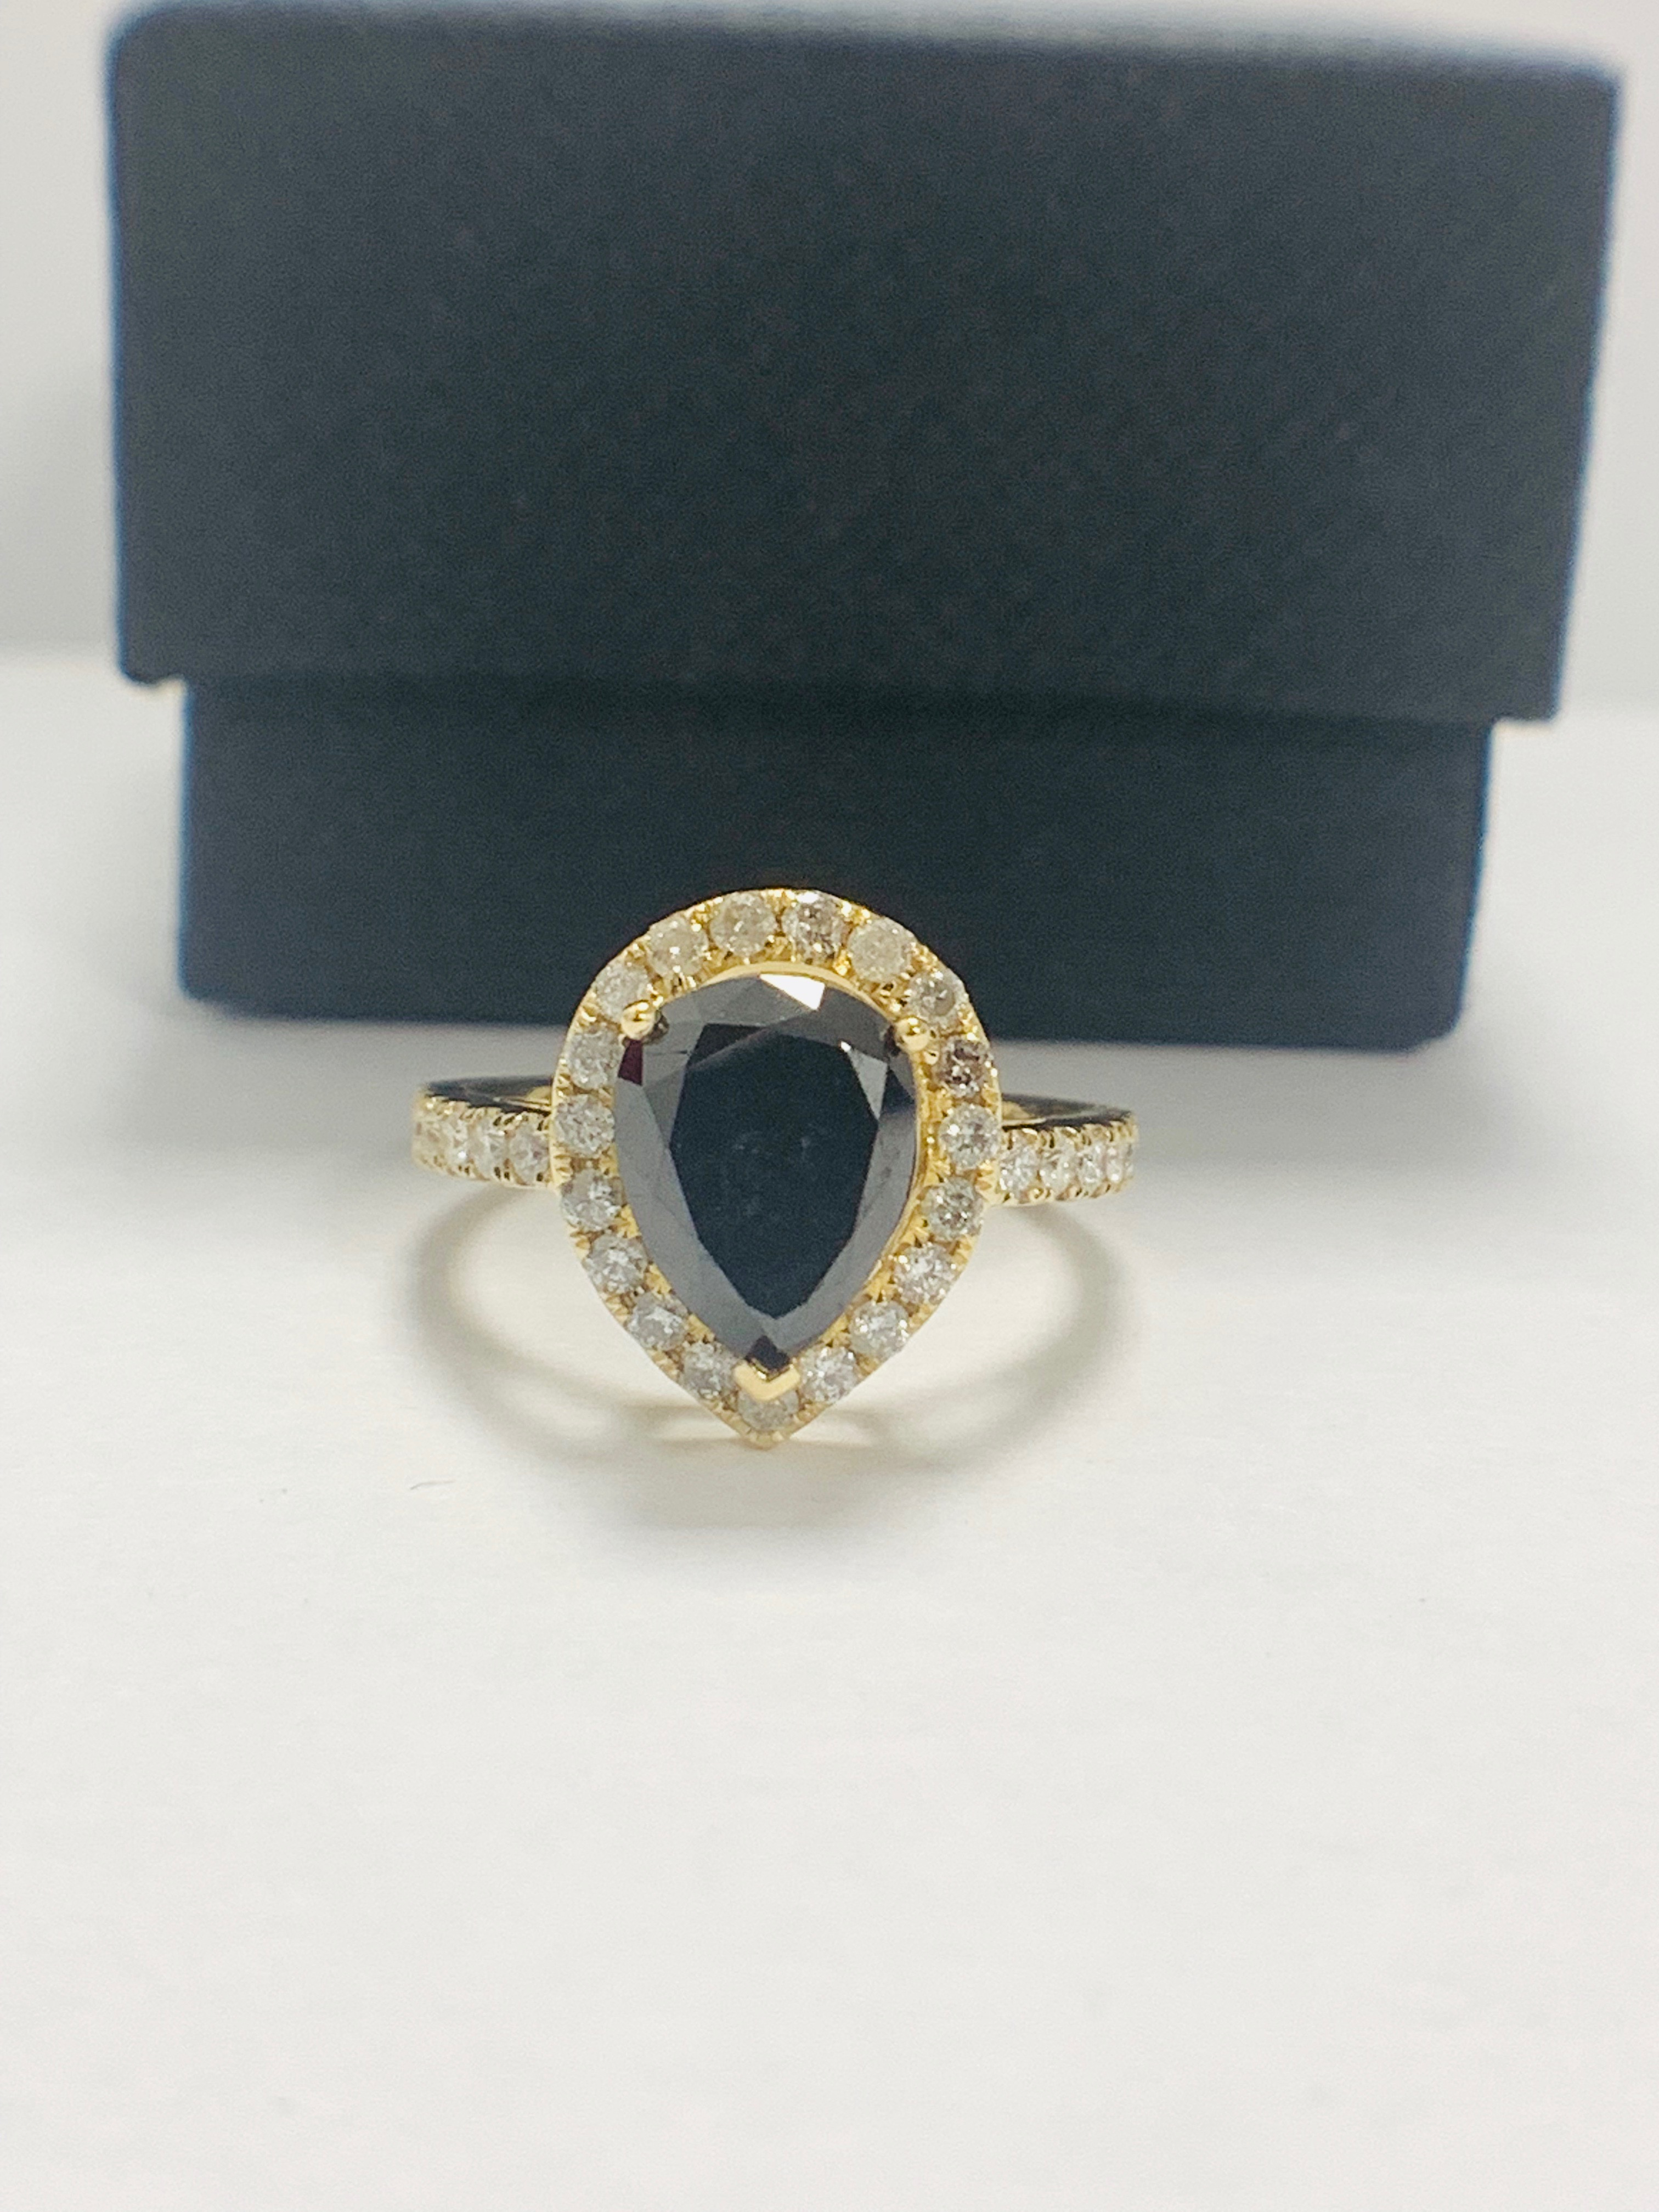 Lot 62 - 14ct Yellow Gold Diamond ring featuring centre, pear cut, black Diamond (2.13ct)